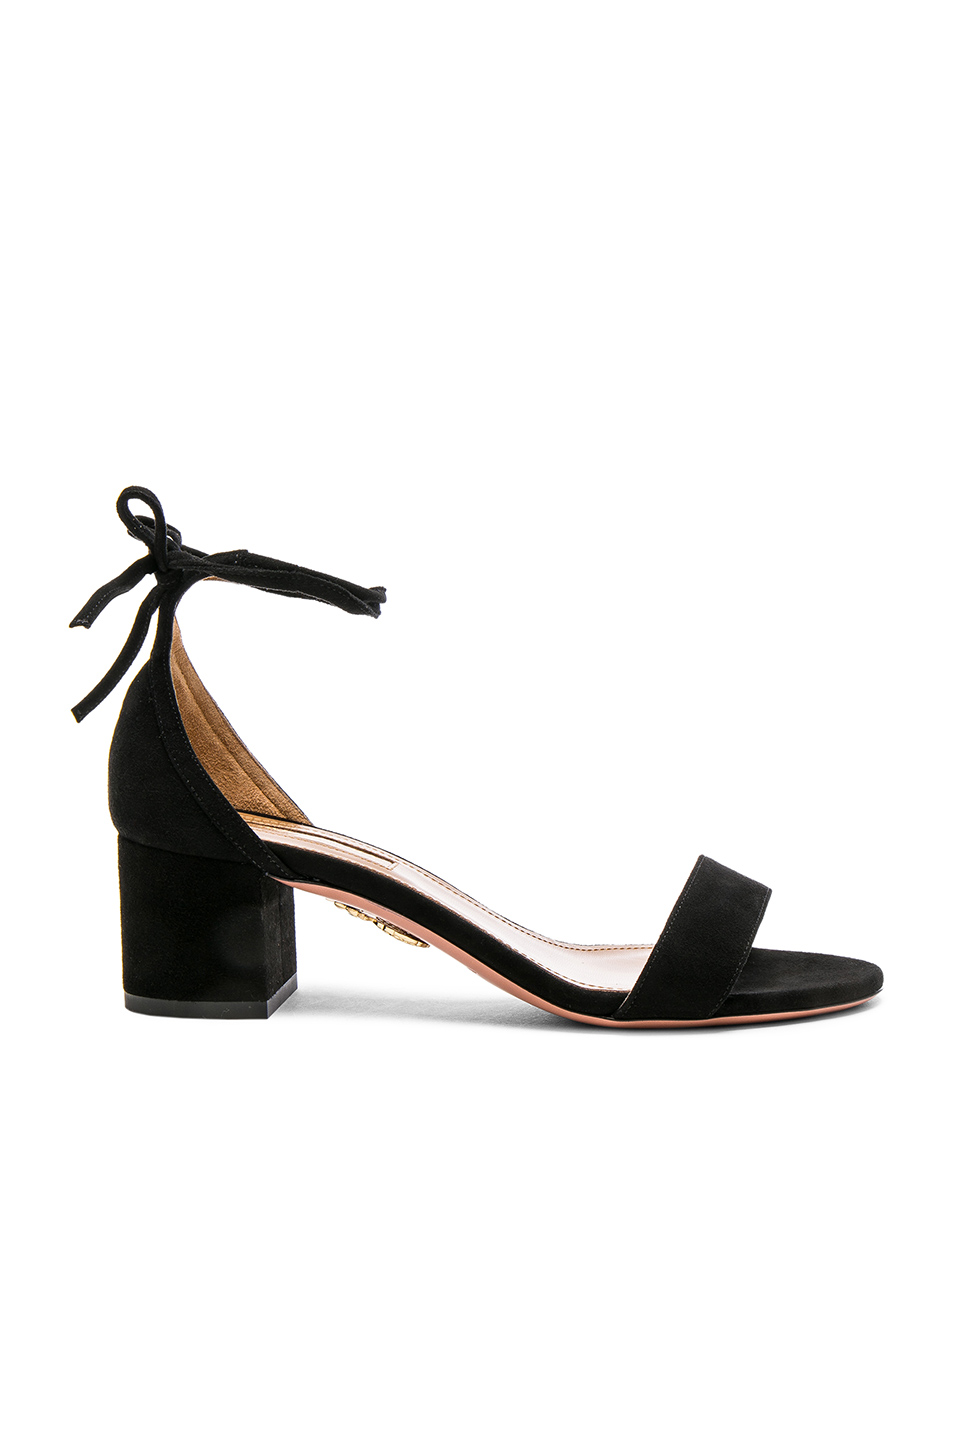 Aquazzura Suede City Sandal Heels In Black